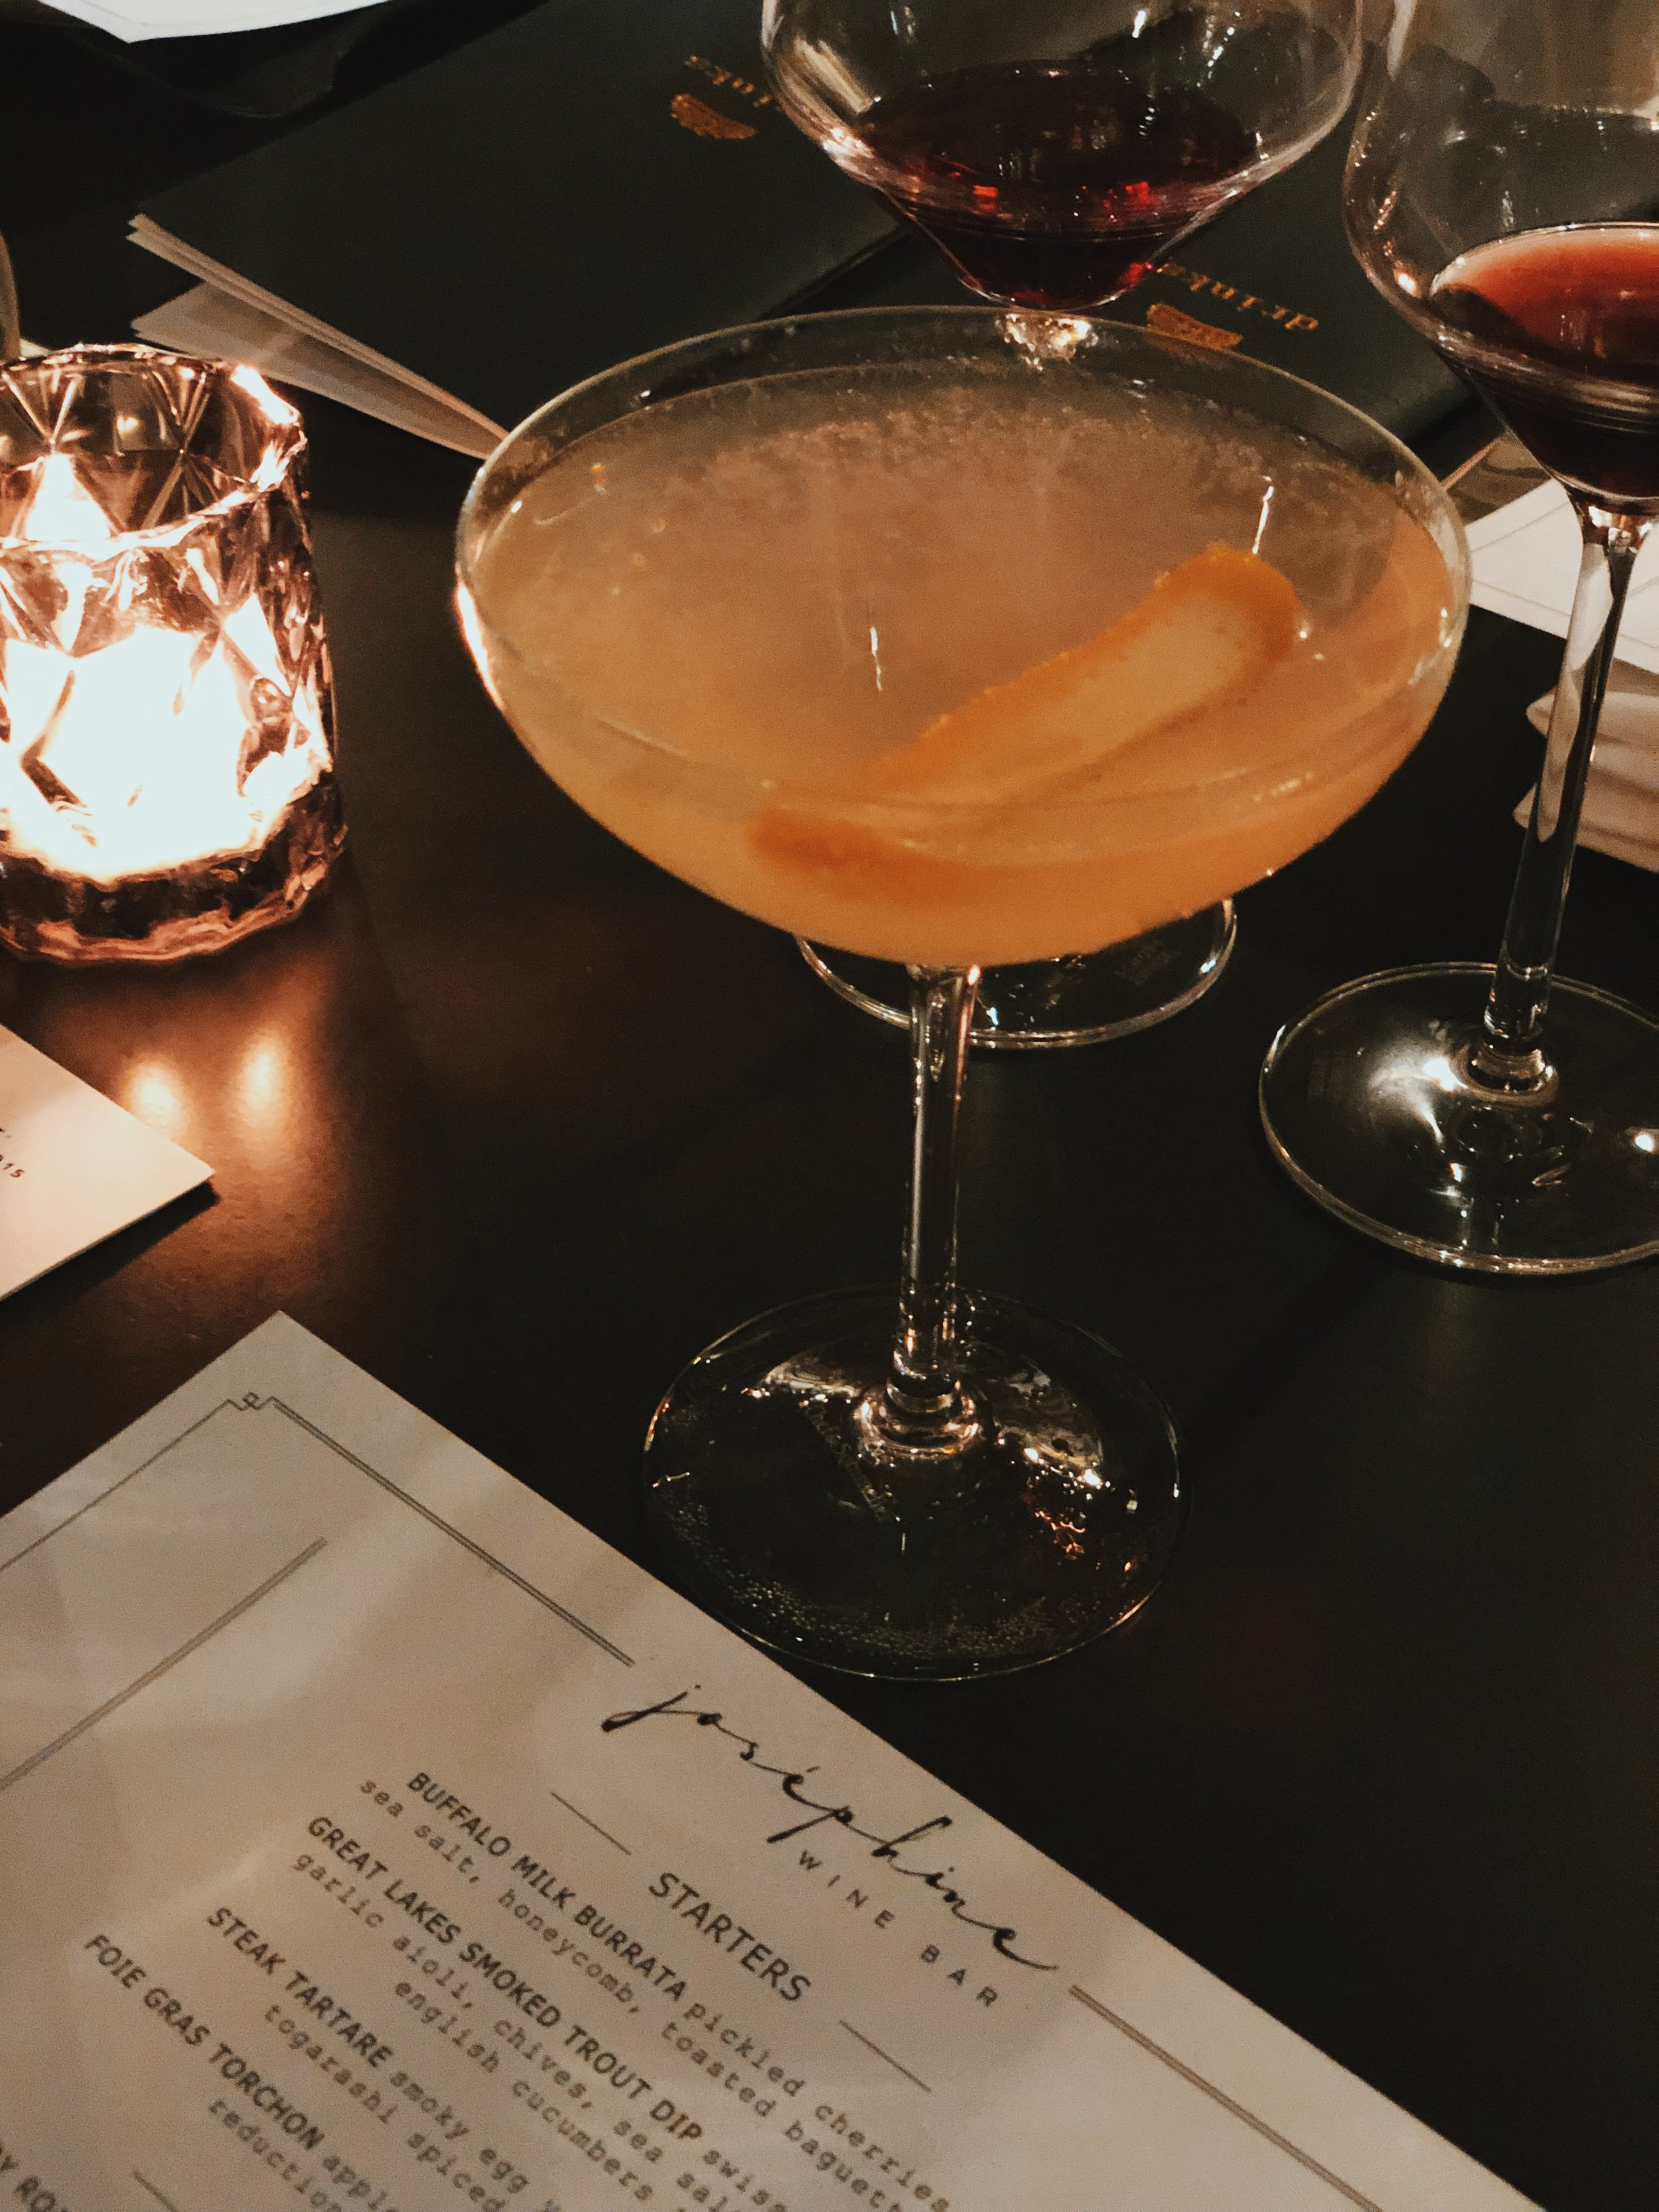 I Love That For You - Josephine Wine Bar Cocktail.jpg